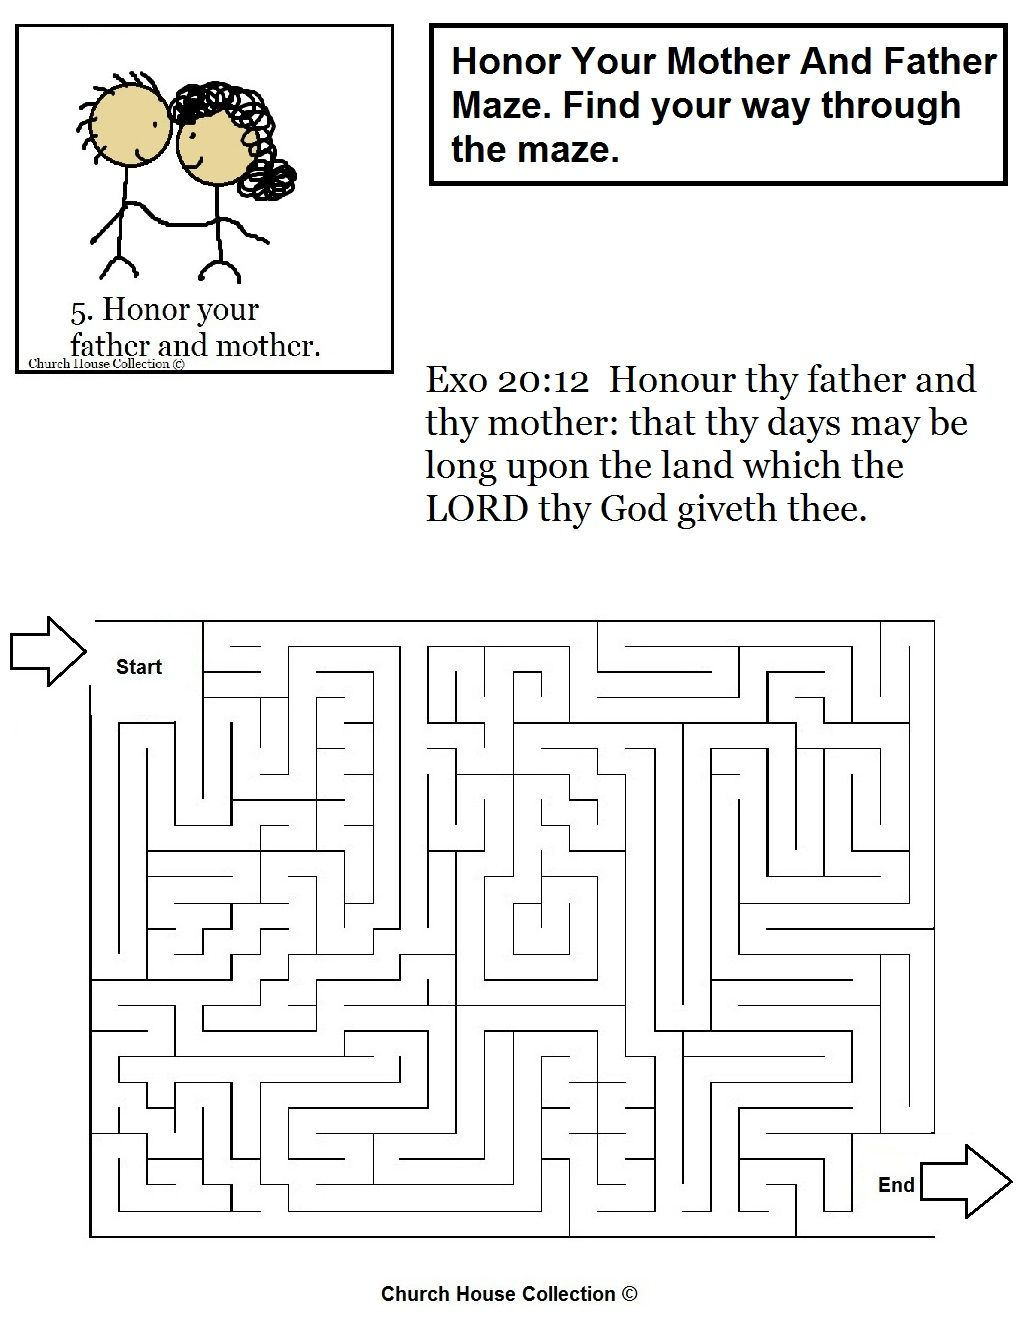 Honor Thy Mother And Father Ten Commandments Maze Jpg 1 019 1 319